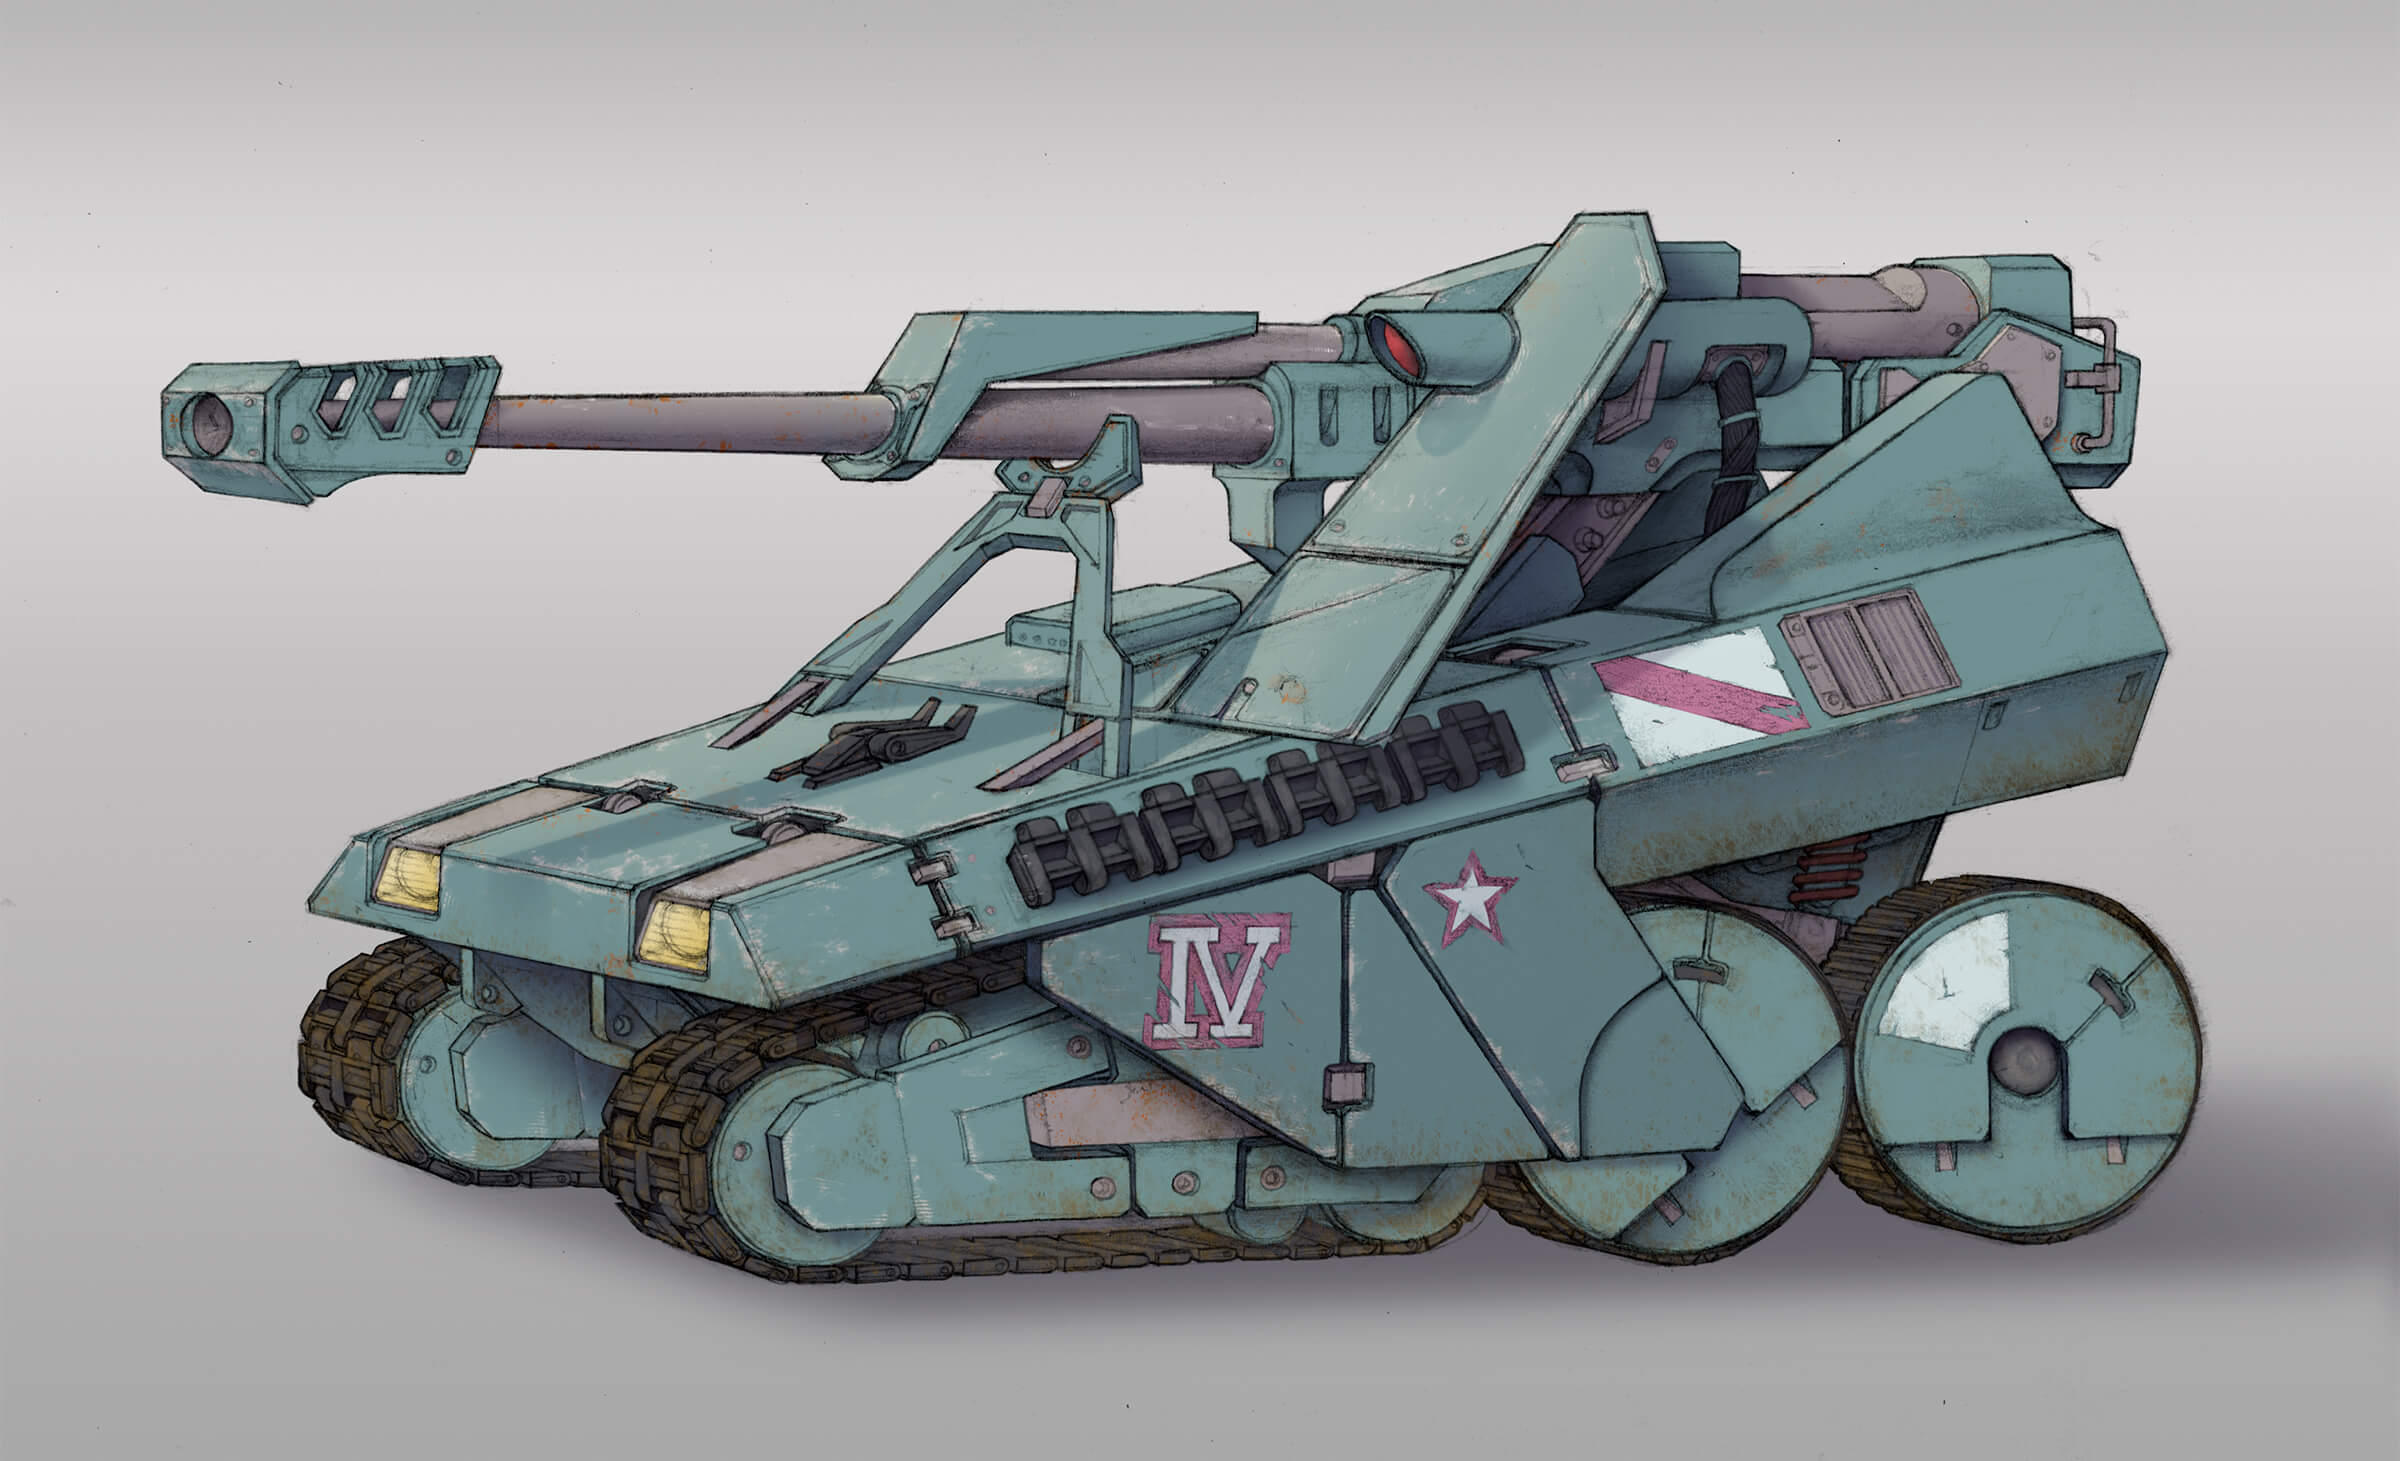 A sturdy military tank with a large gun and IV printed on the side